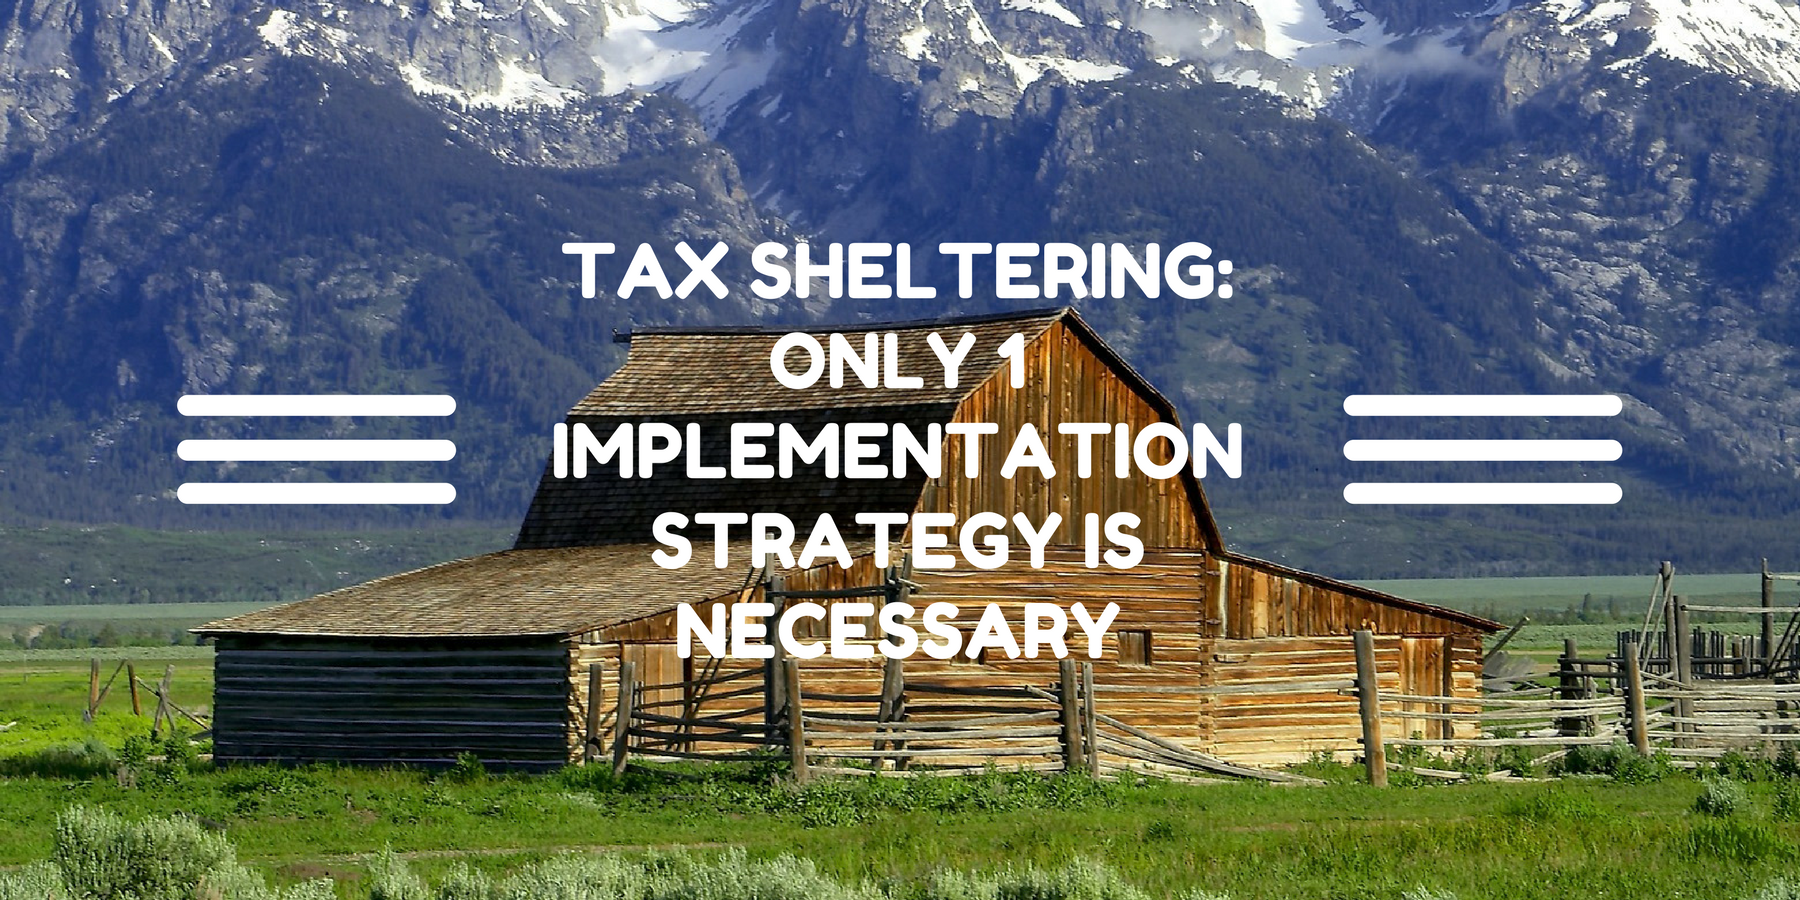 TAX-SHELTERING-ONLY-1-IMPLEMENTATION-STRATEGY-IS-NECESSARY-2